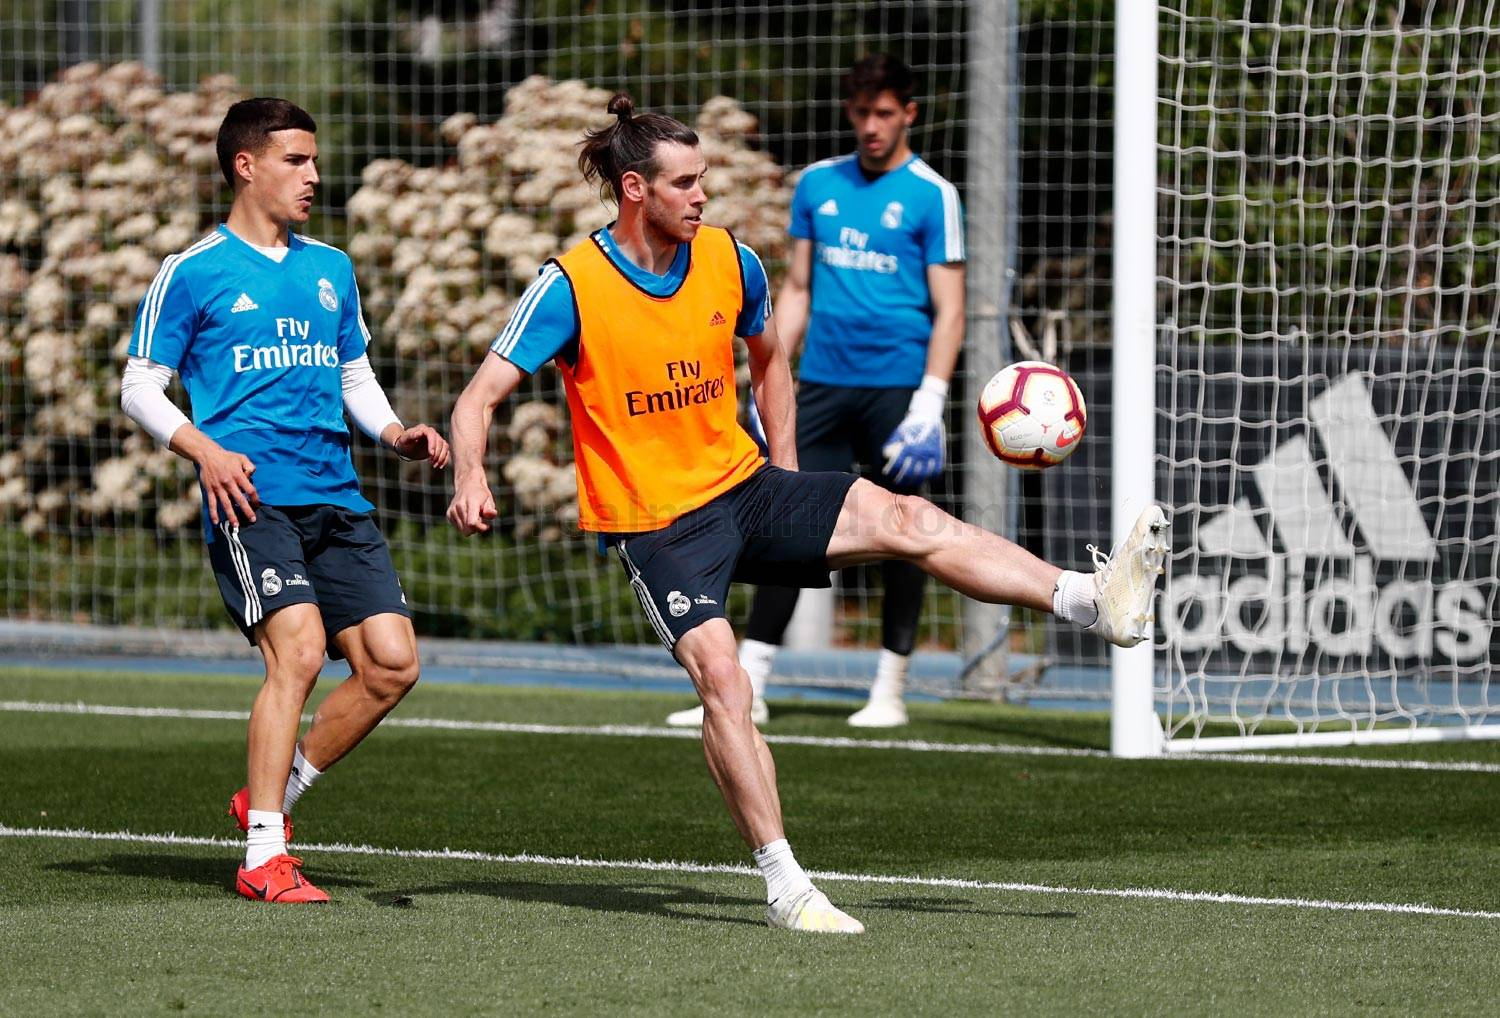 Real Madrid - Entrenamiento del Real Madrid - 17-04-2019